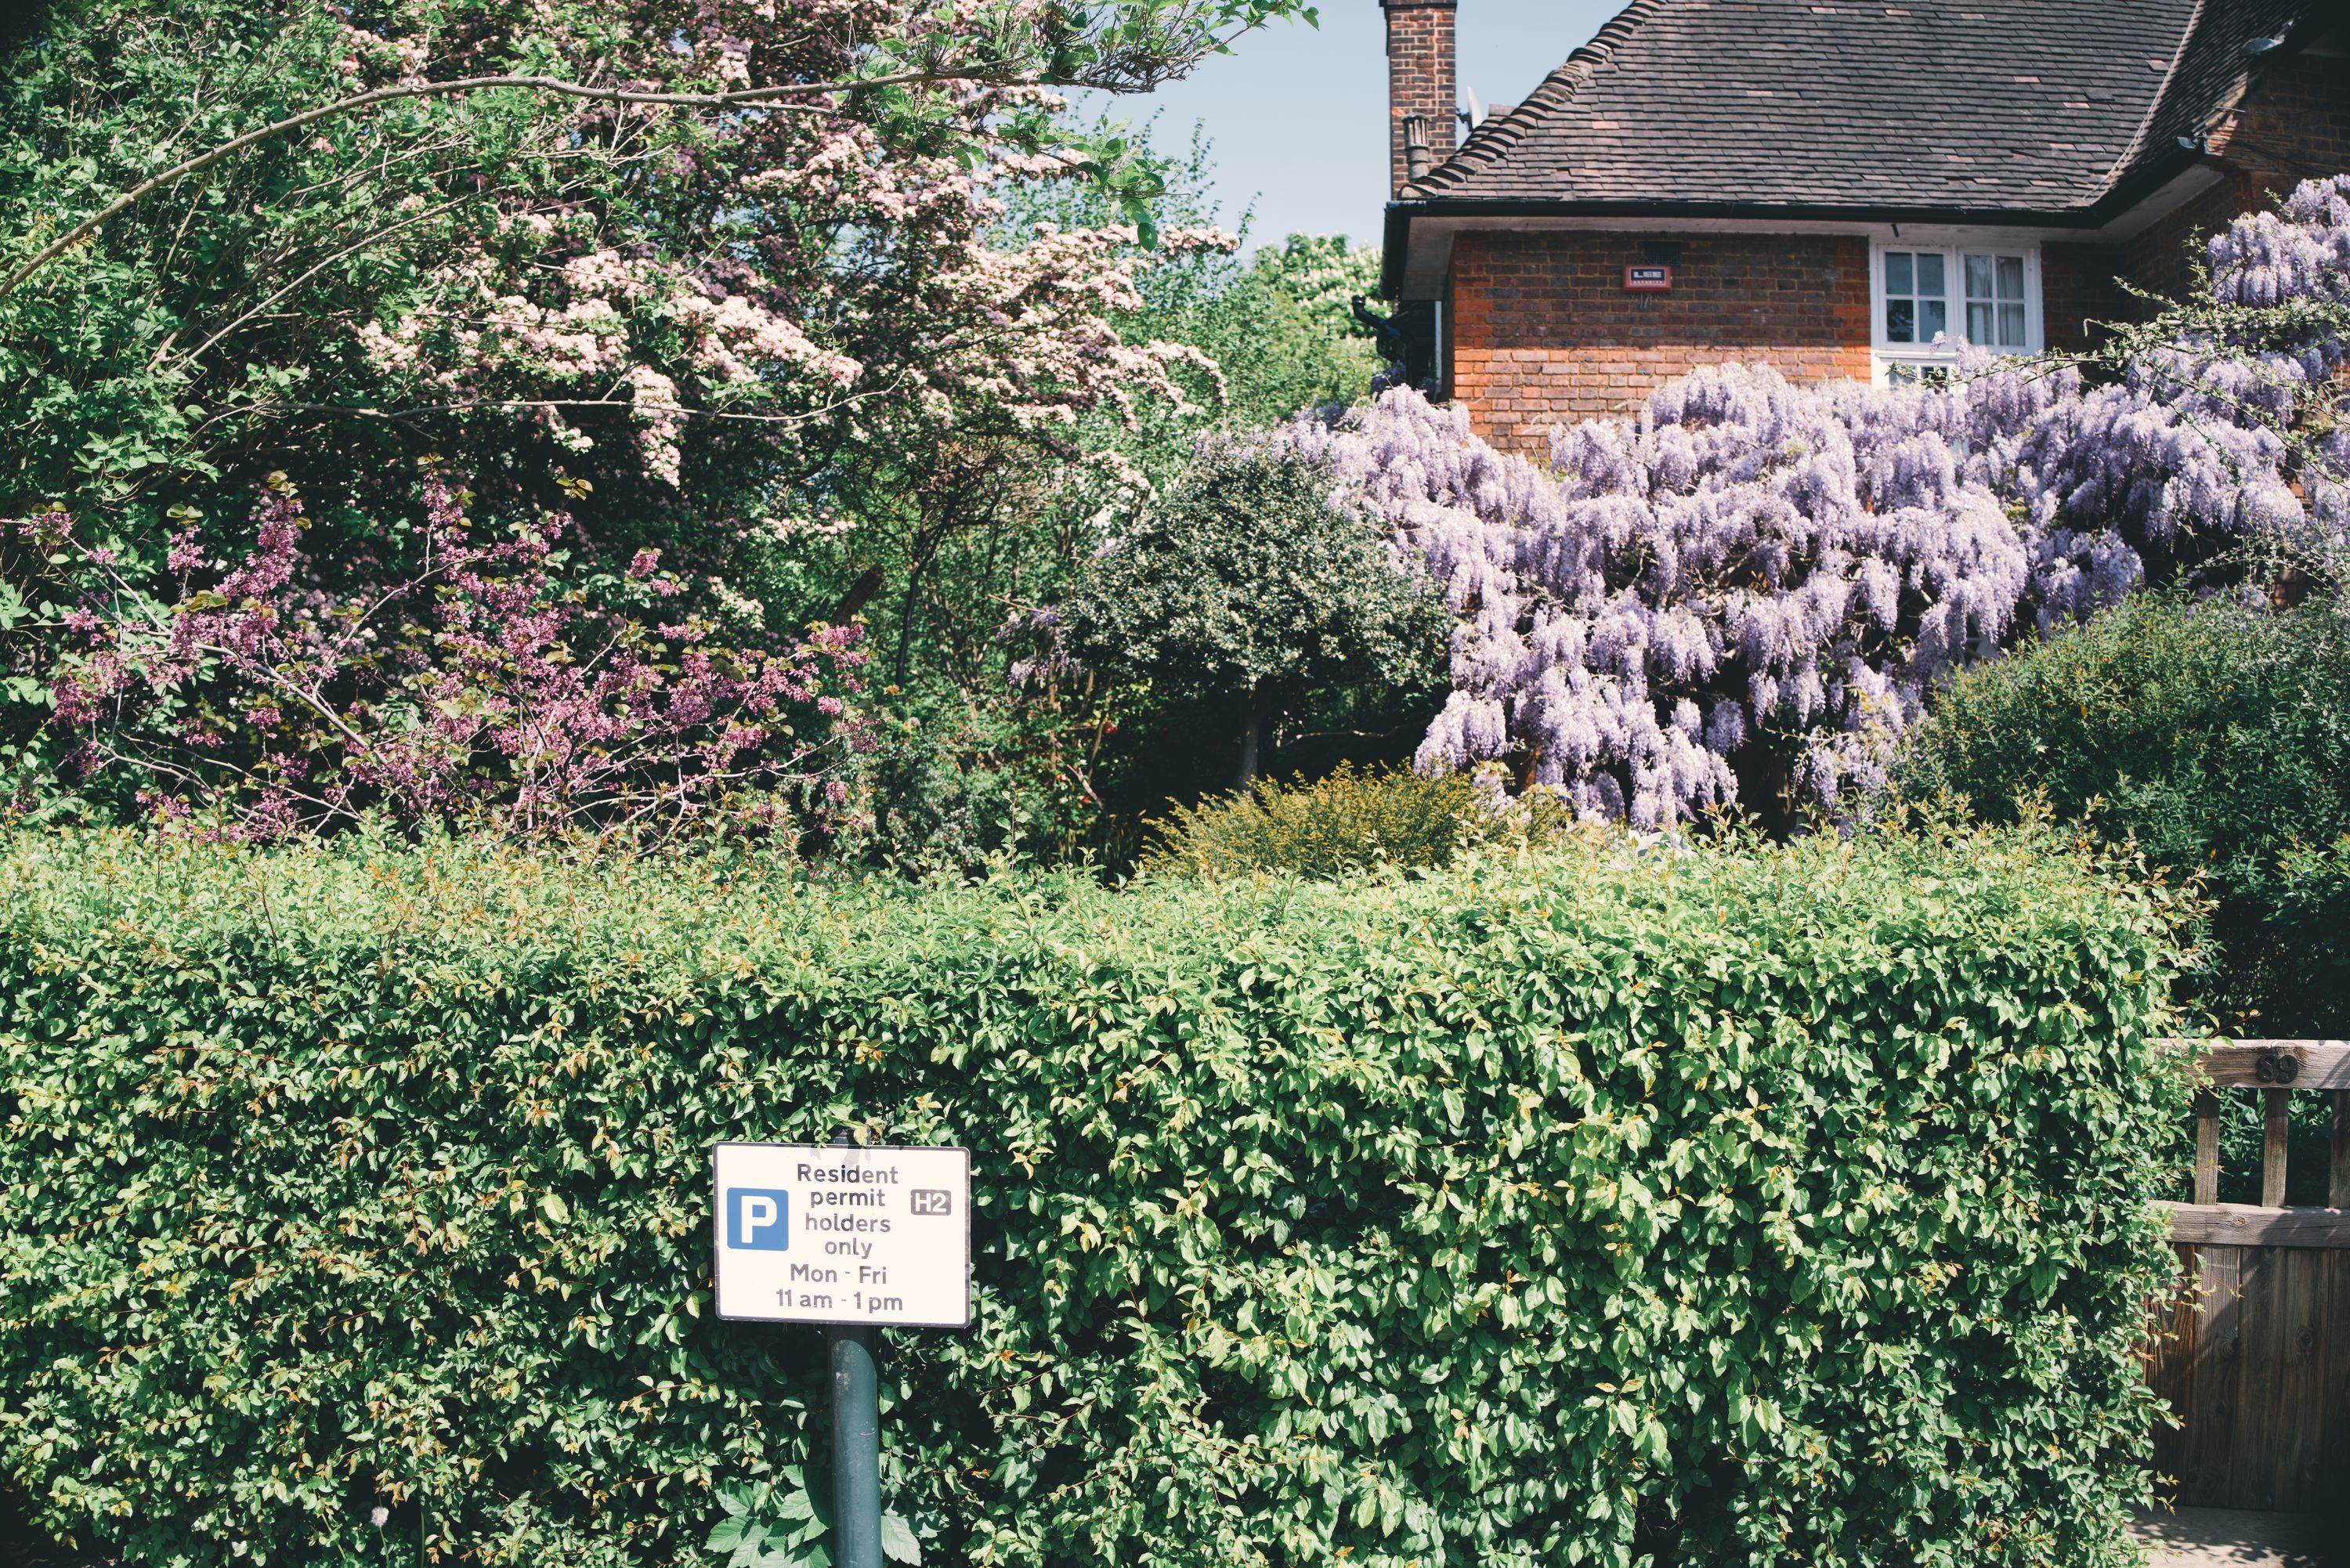 corringham road wisteria